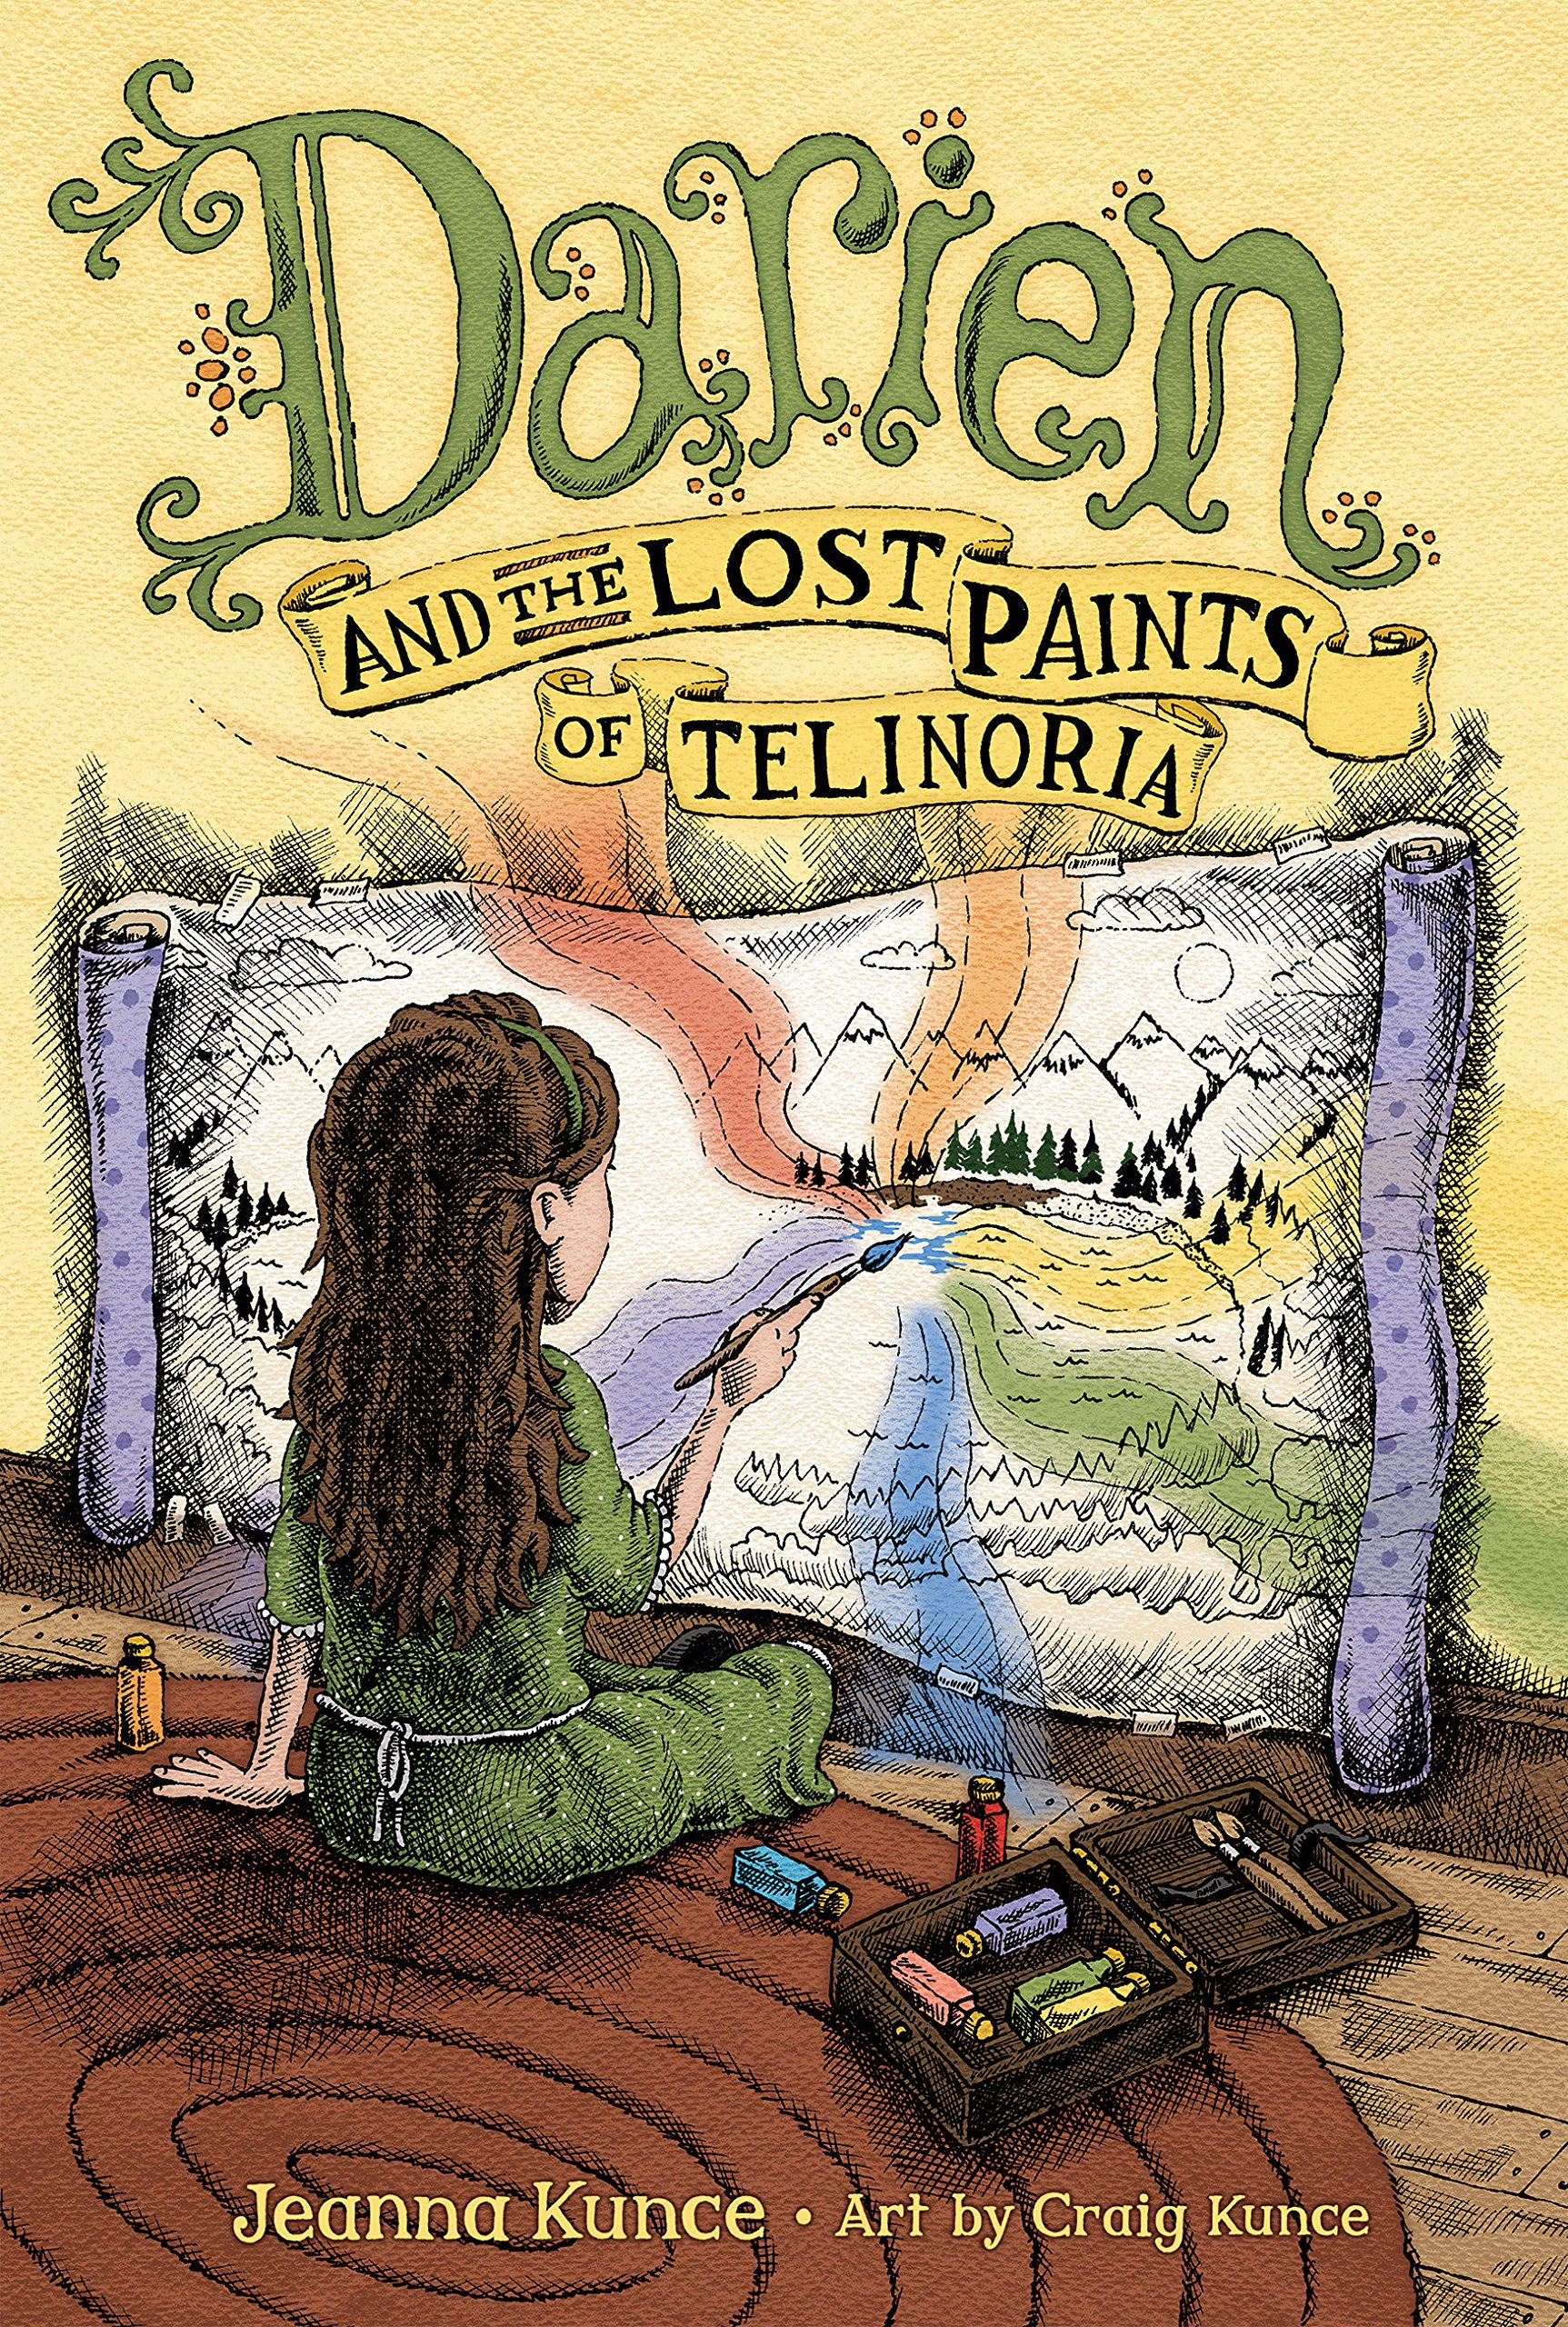 Image result for darien and the lost paints of telinoria